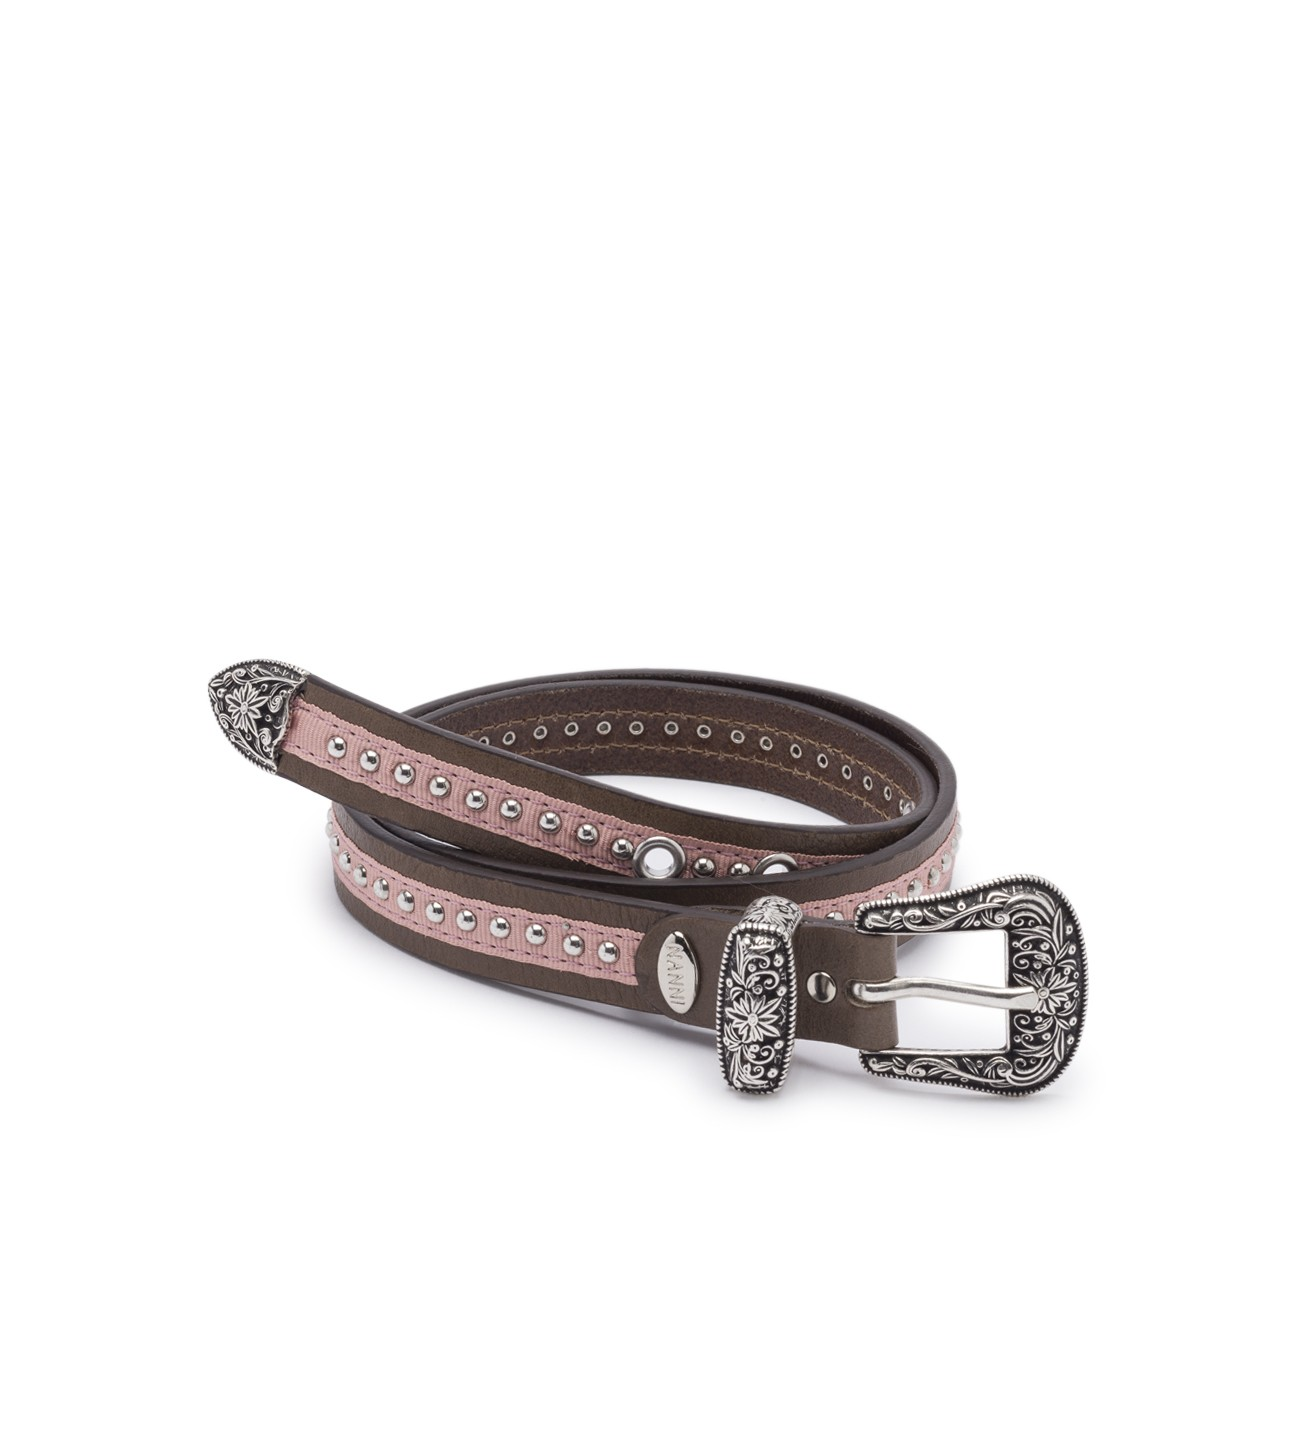 NANNI_ENGRAVED_BUCKLE_BELT_MARIONA_FASHION_CLOTHING_WOMAN_SHOP_ONLINE_956